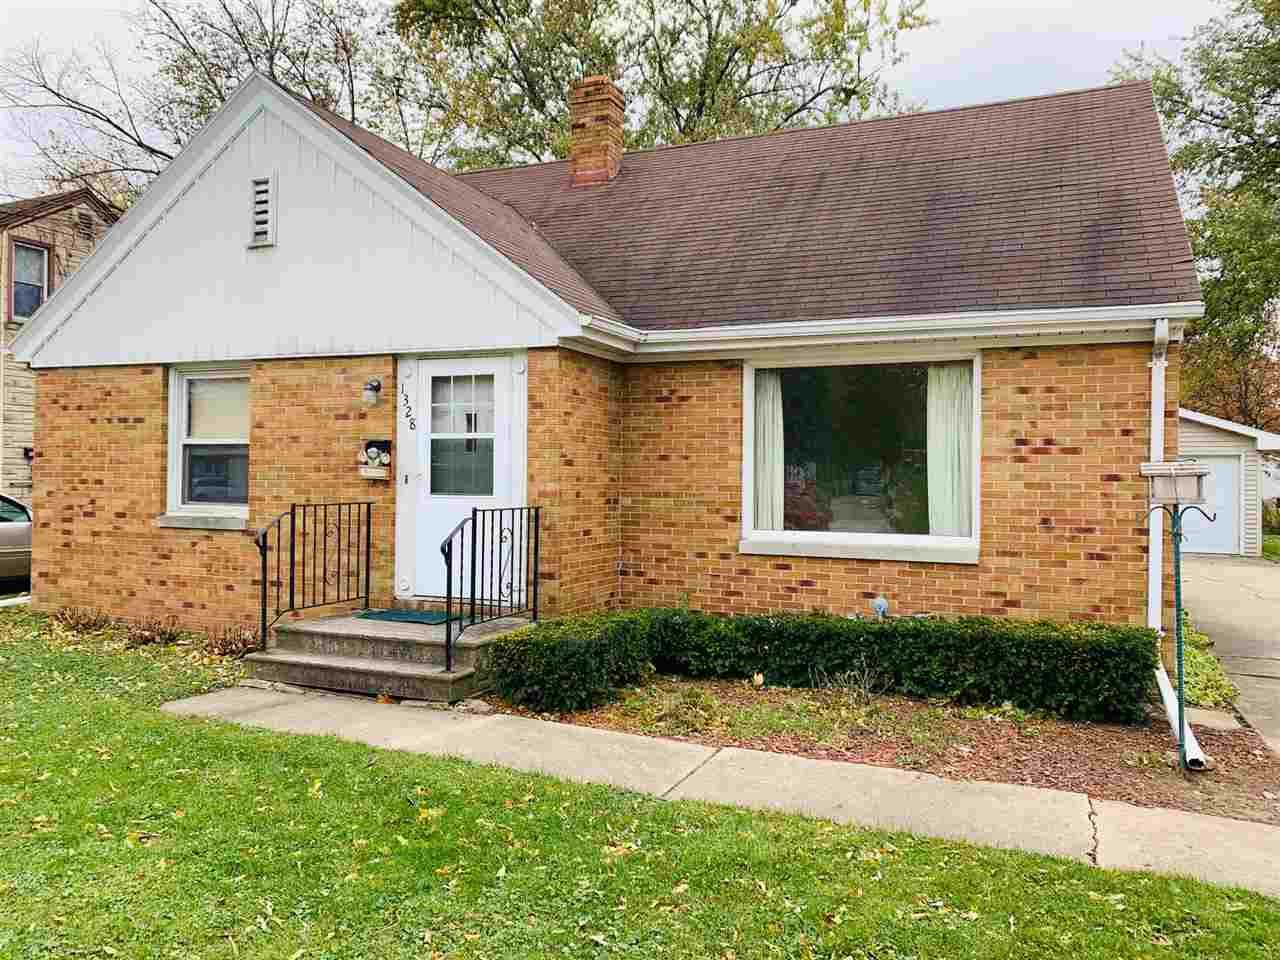 1328 MC CORMICK Street, Green Bay, WI 54301 - MLS#: 50231932